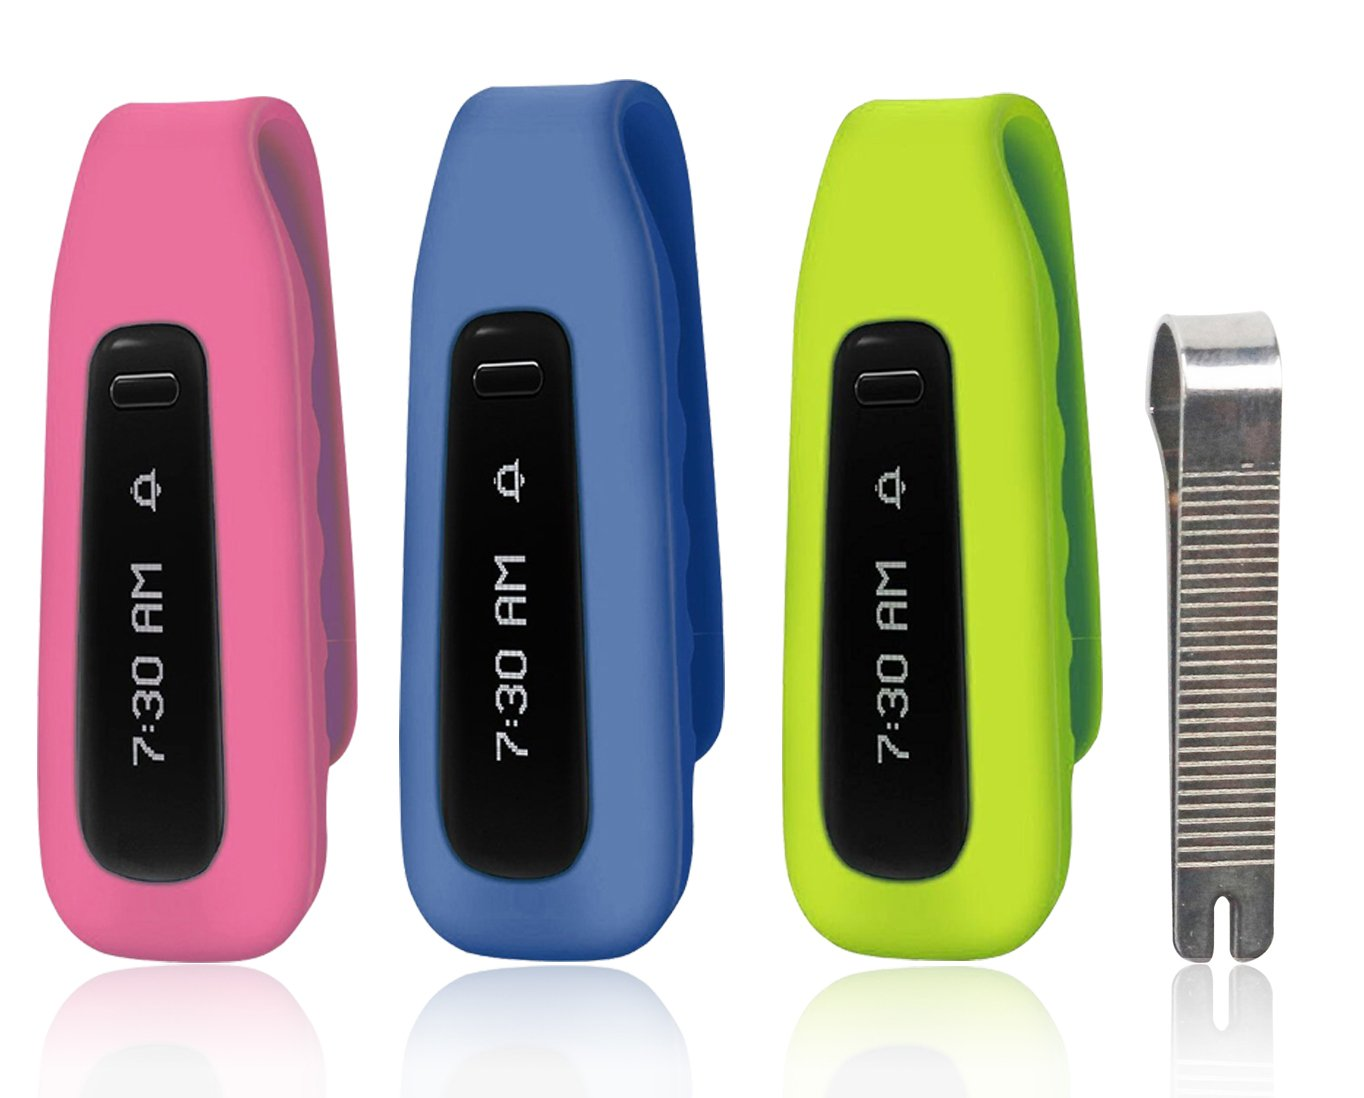 MDW 3 Pcs Silicon Clip For Fitbit One Replacement Clip Accessory Pack For Fitbit ONE Anti Slip Off and Improved Cap Design-Pink,Navy,Green